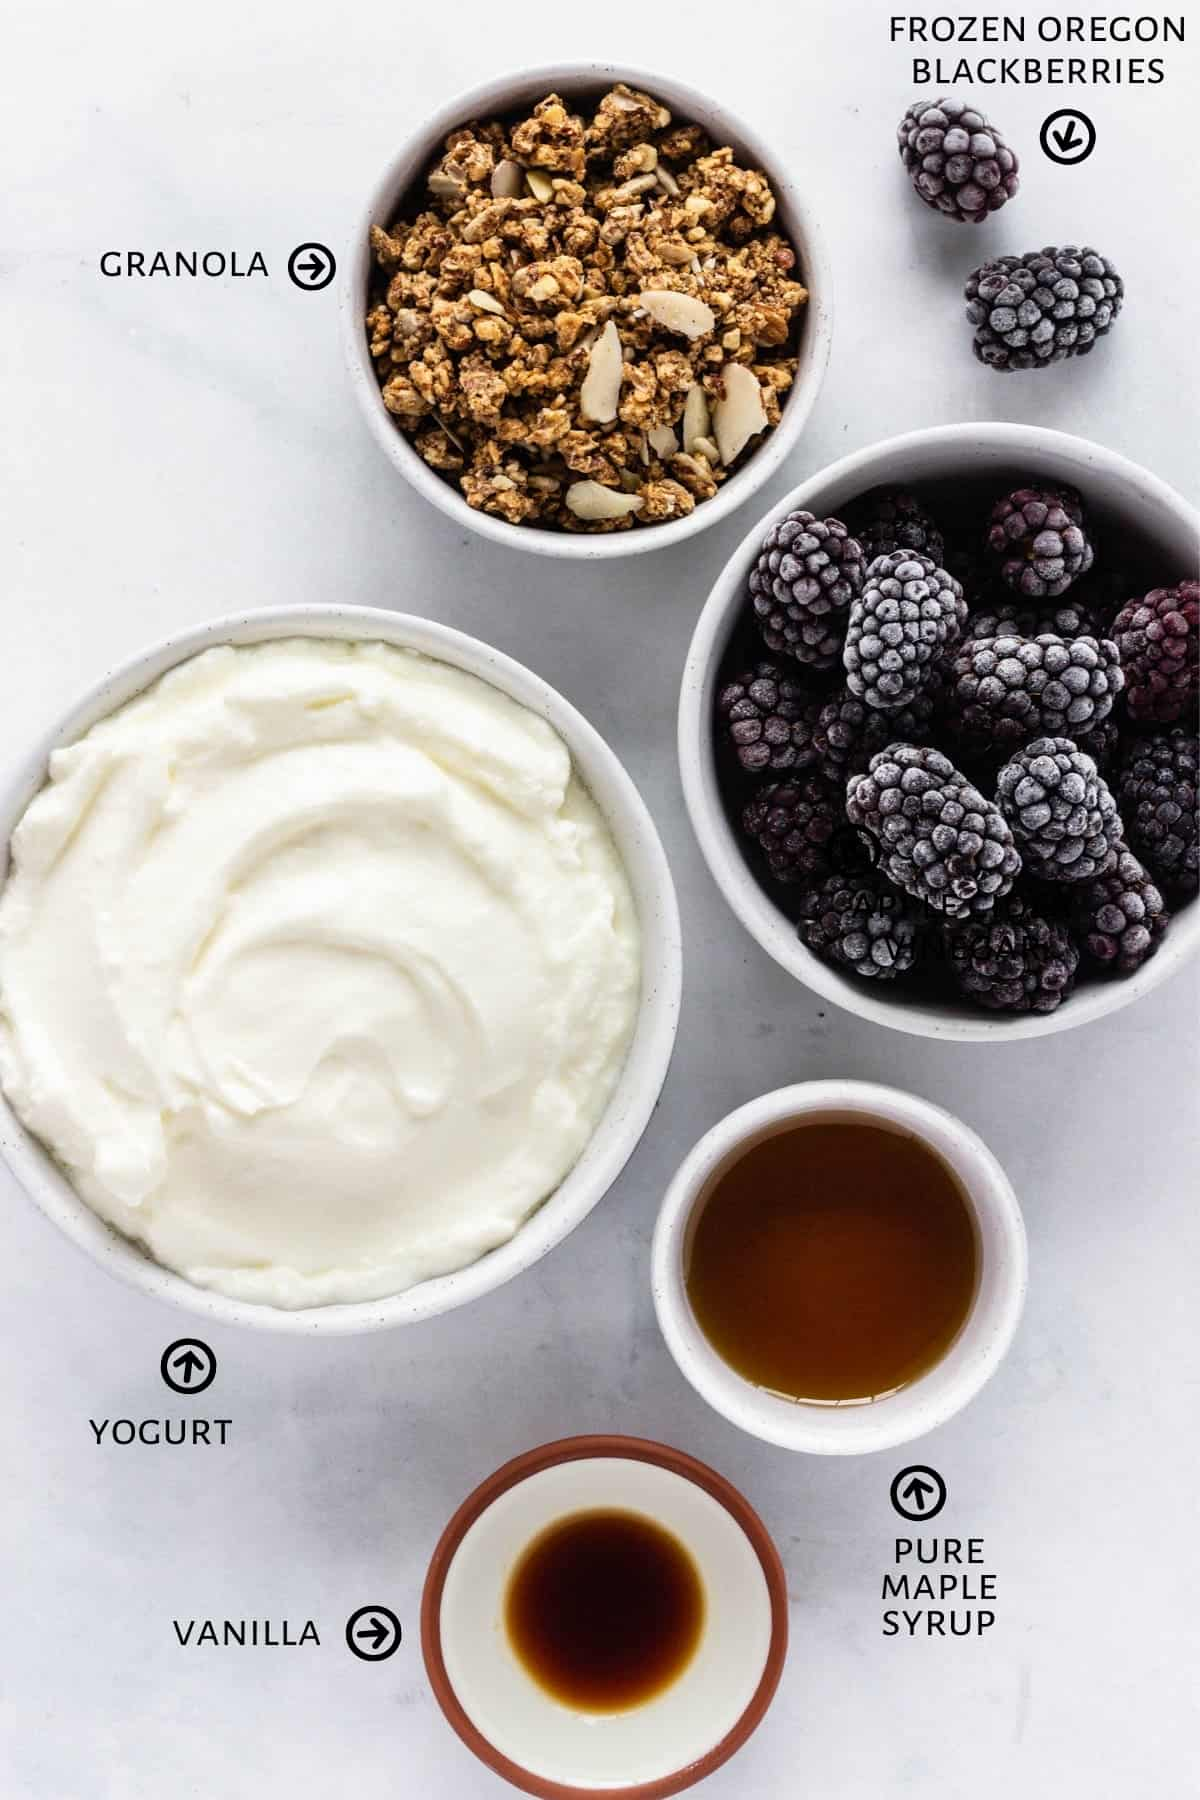 Ingredients for berry yogurt popsicles are laid out on the a counter: unsweetened plain yogurt, blackberries, maple syrup, vanilla, and granola.